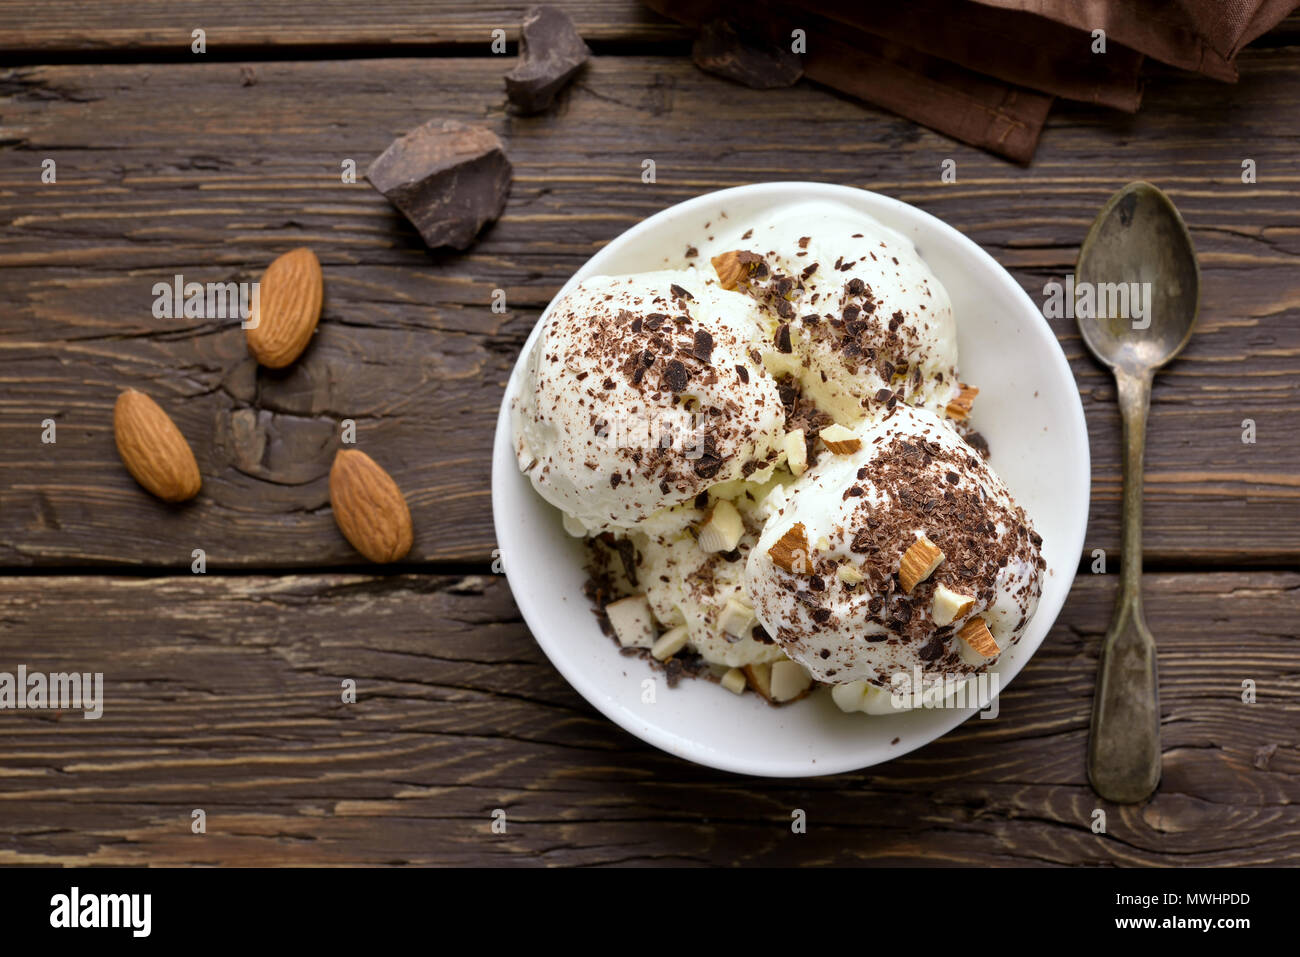 Vanilla ice cream with nuts in bowl on wooden background. Cold summer dessert. Top view, flat lay - Stock Image